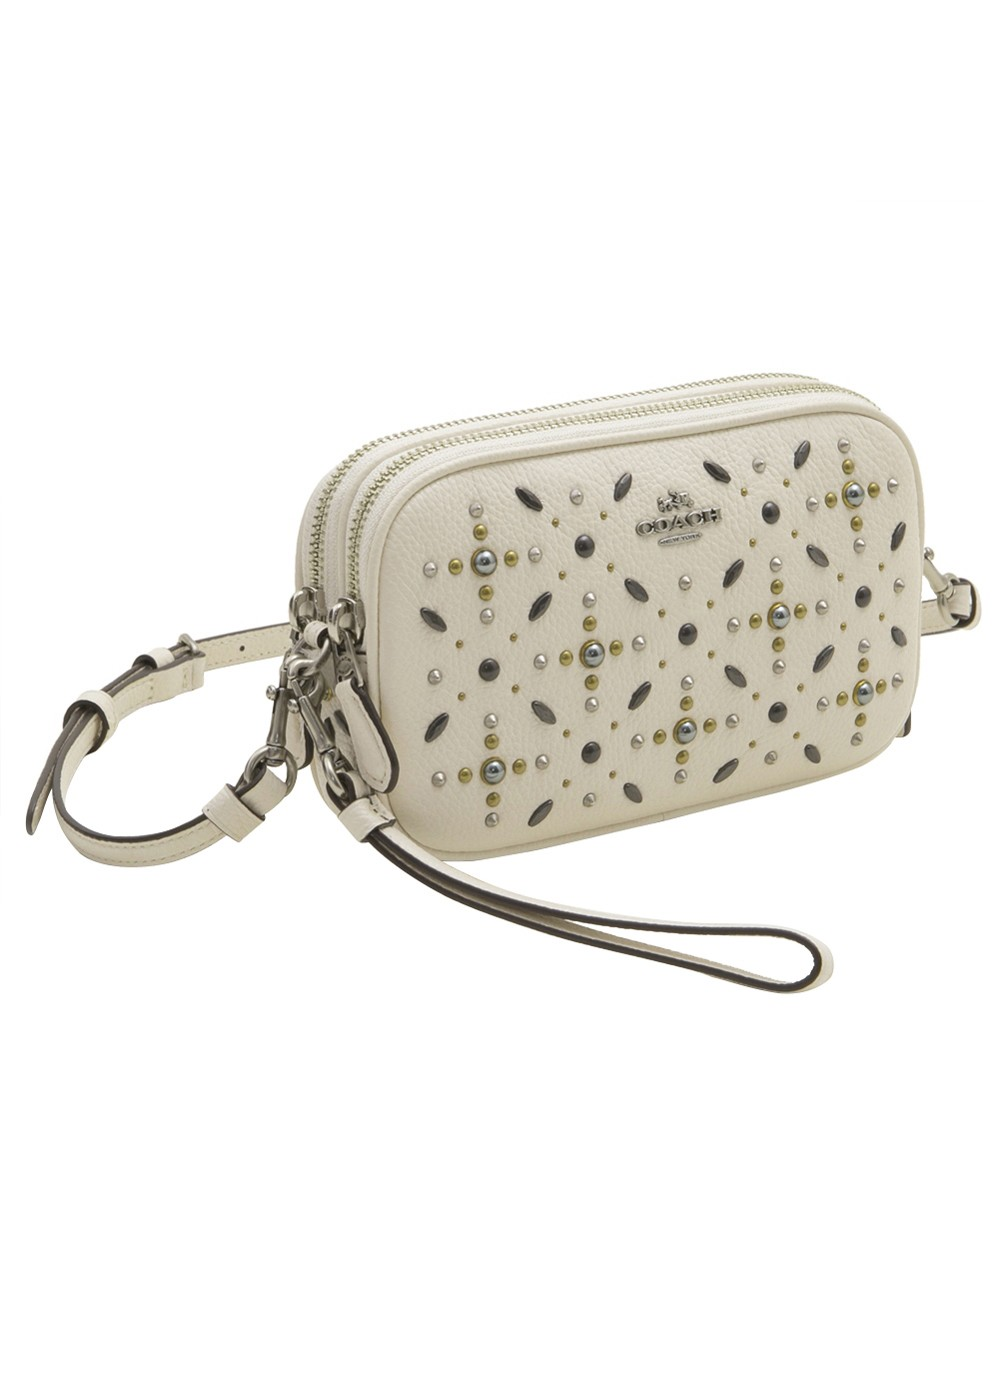 【最大55%OFF】CROSSBODY CLUTCH|CHALK|ショルダーバッグ|COACH(TM)